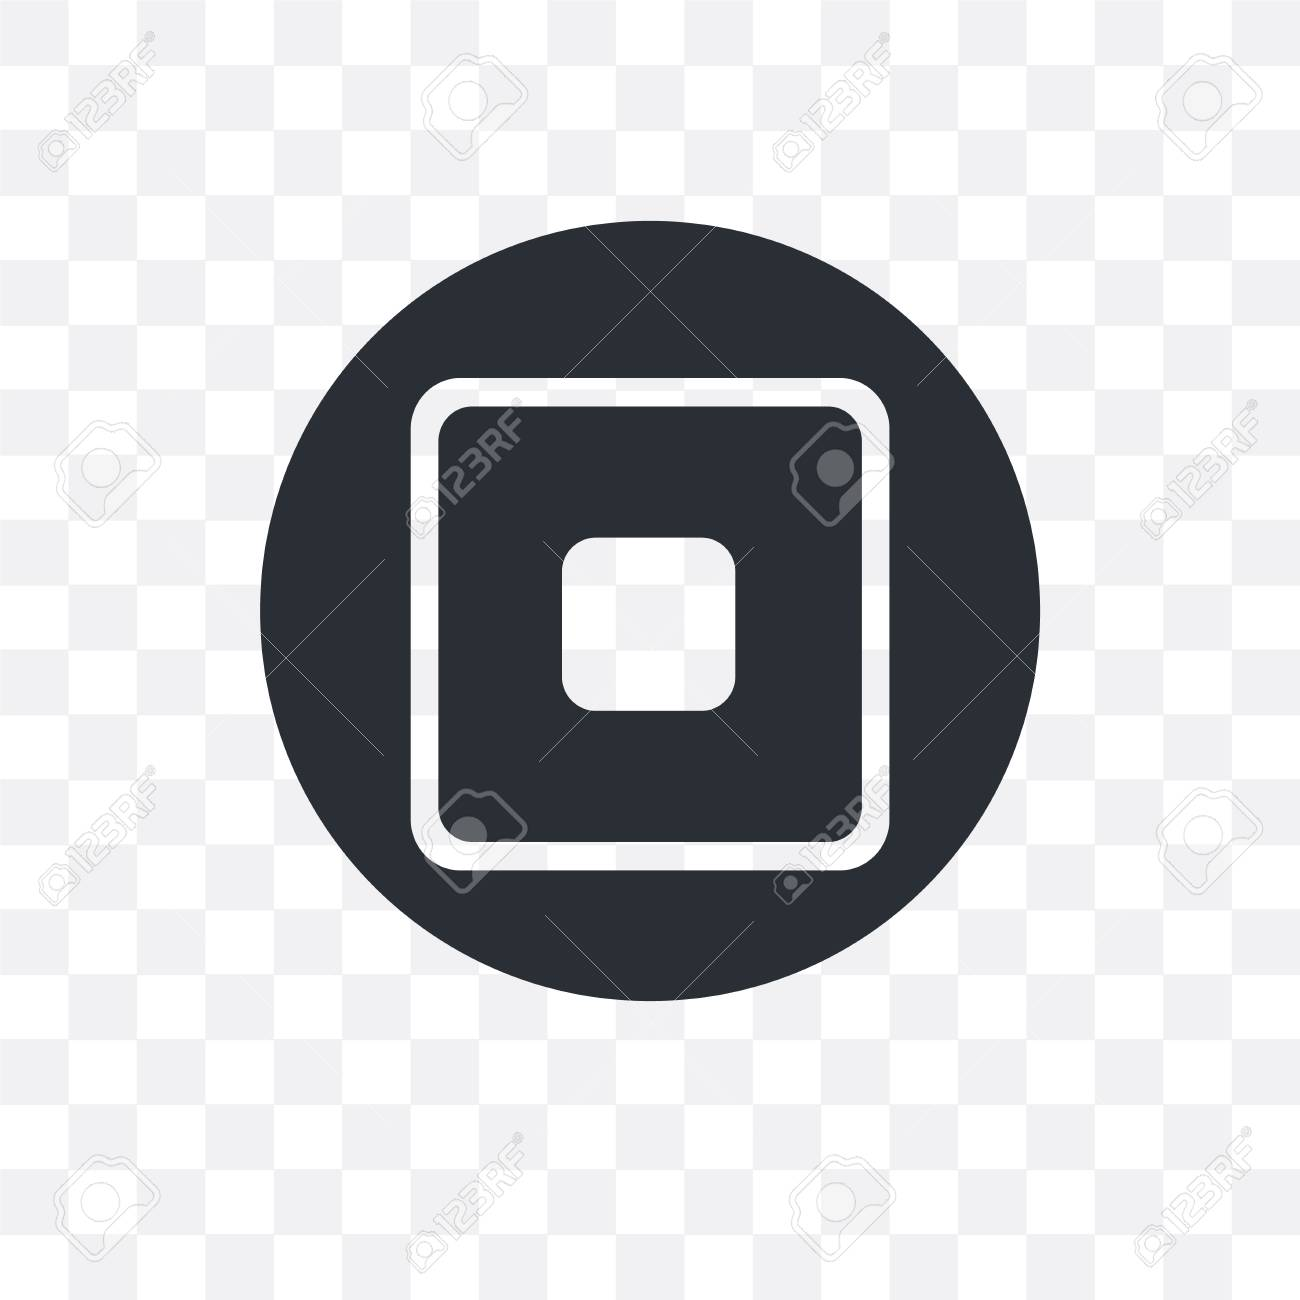 Stop Square Button vector icon isolated on transparent background,